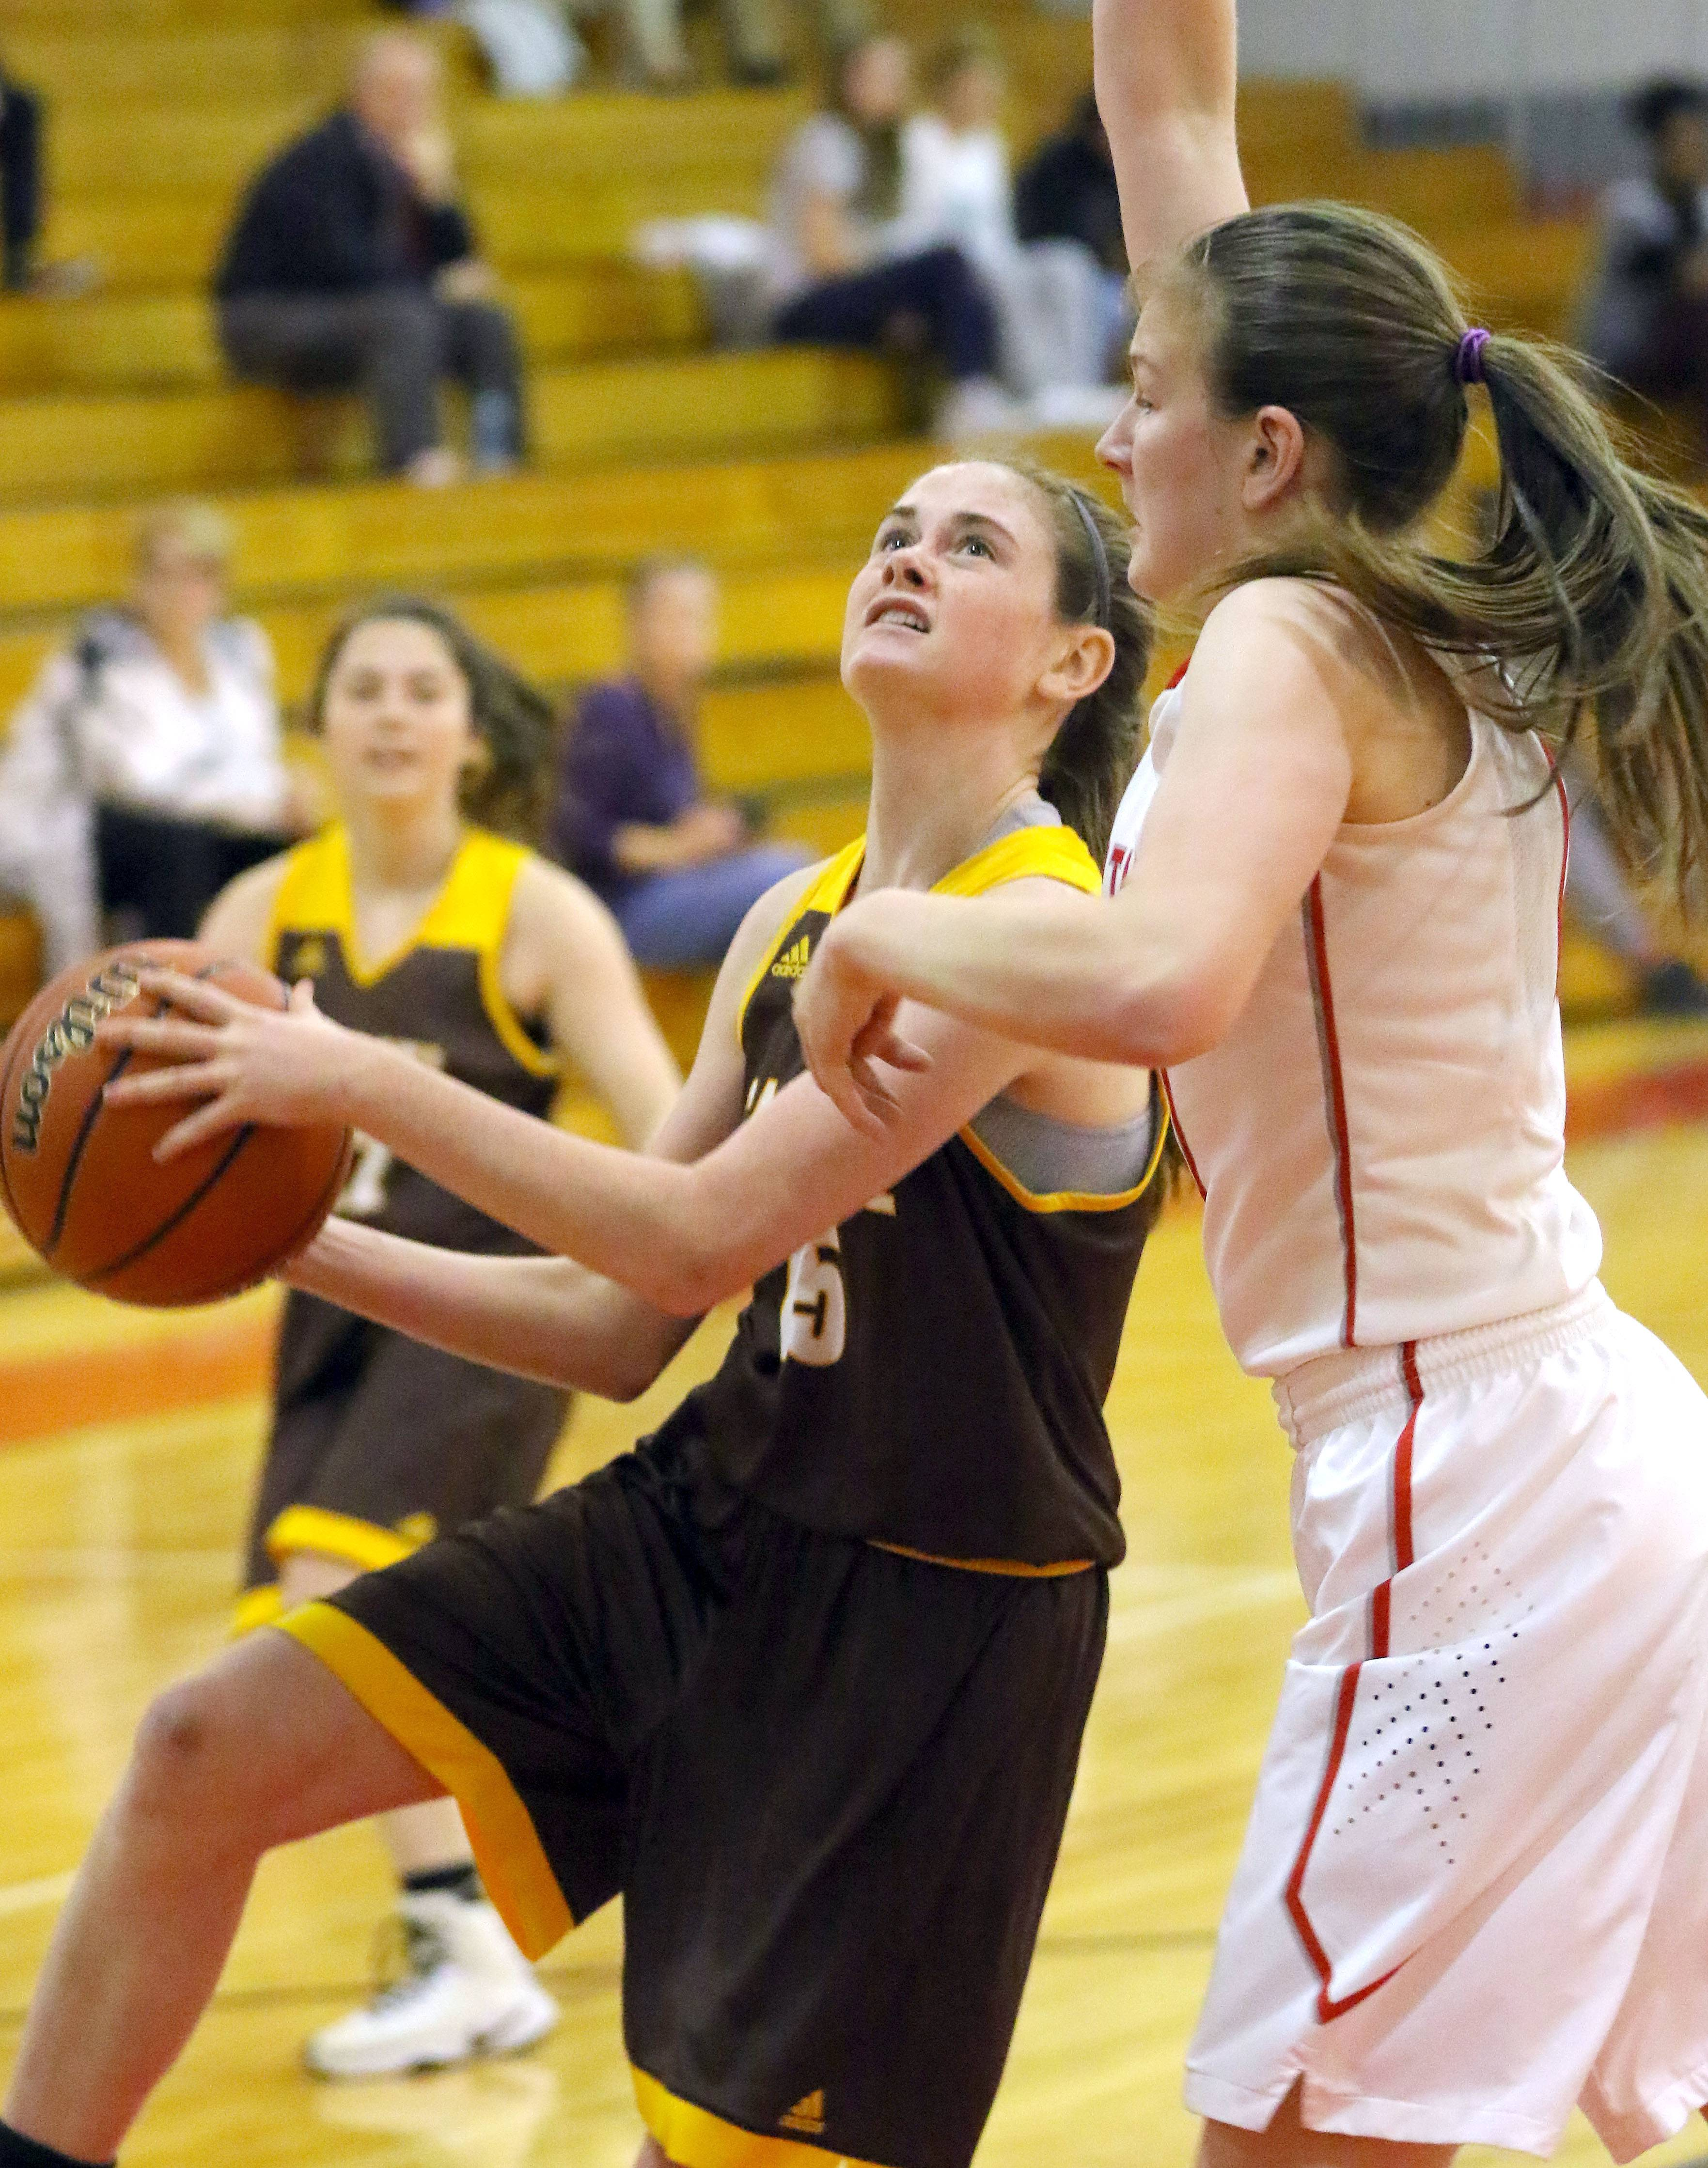 Carmel's Caitlin Teehan, left, drives on Mundelein's Morgan Frank on Tuesday at Mundelein.